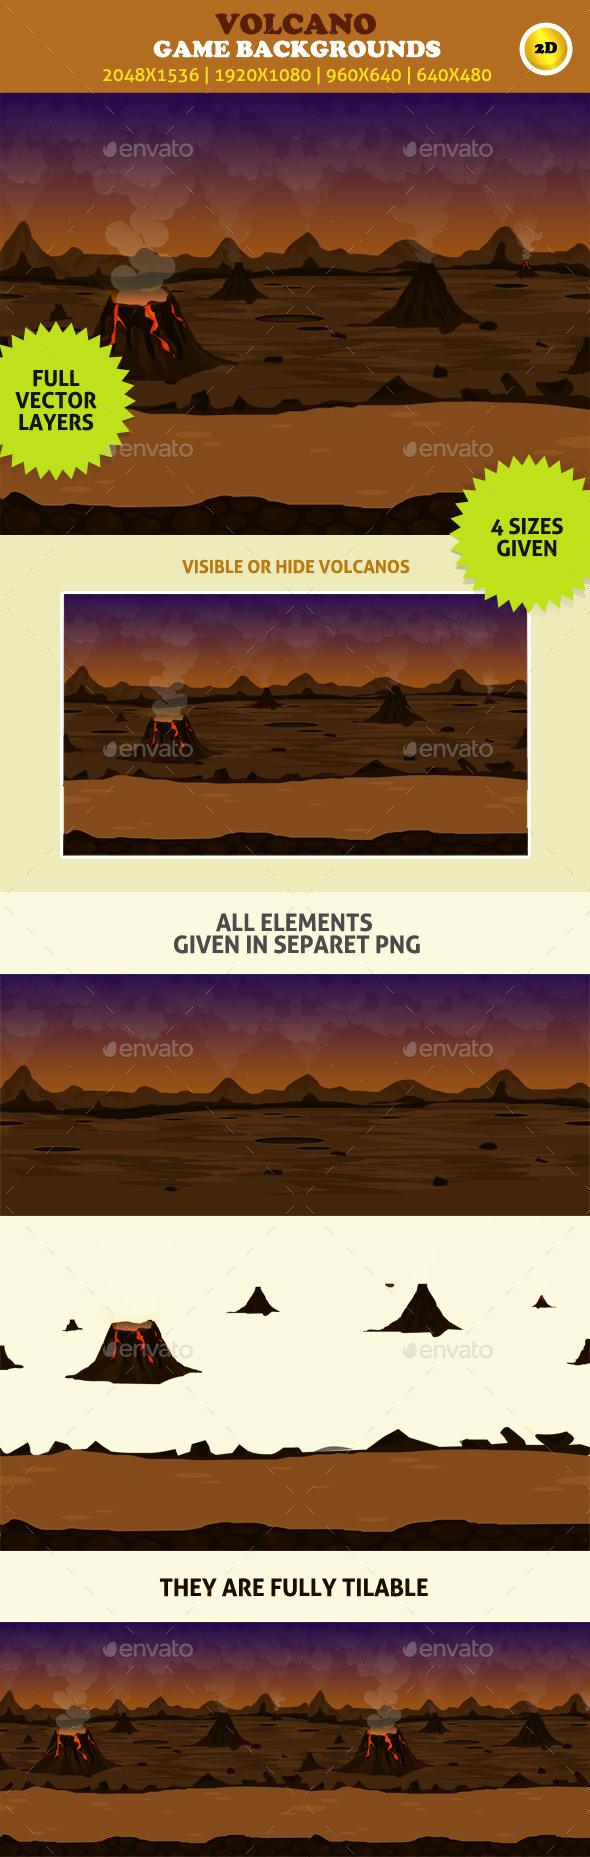 Game Backgrounds Volcano